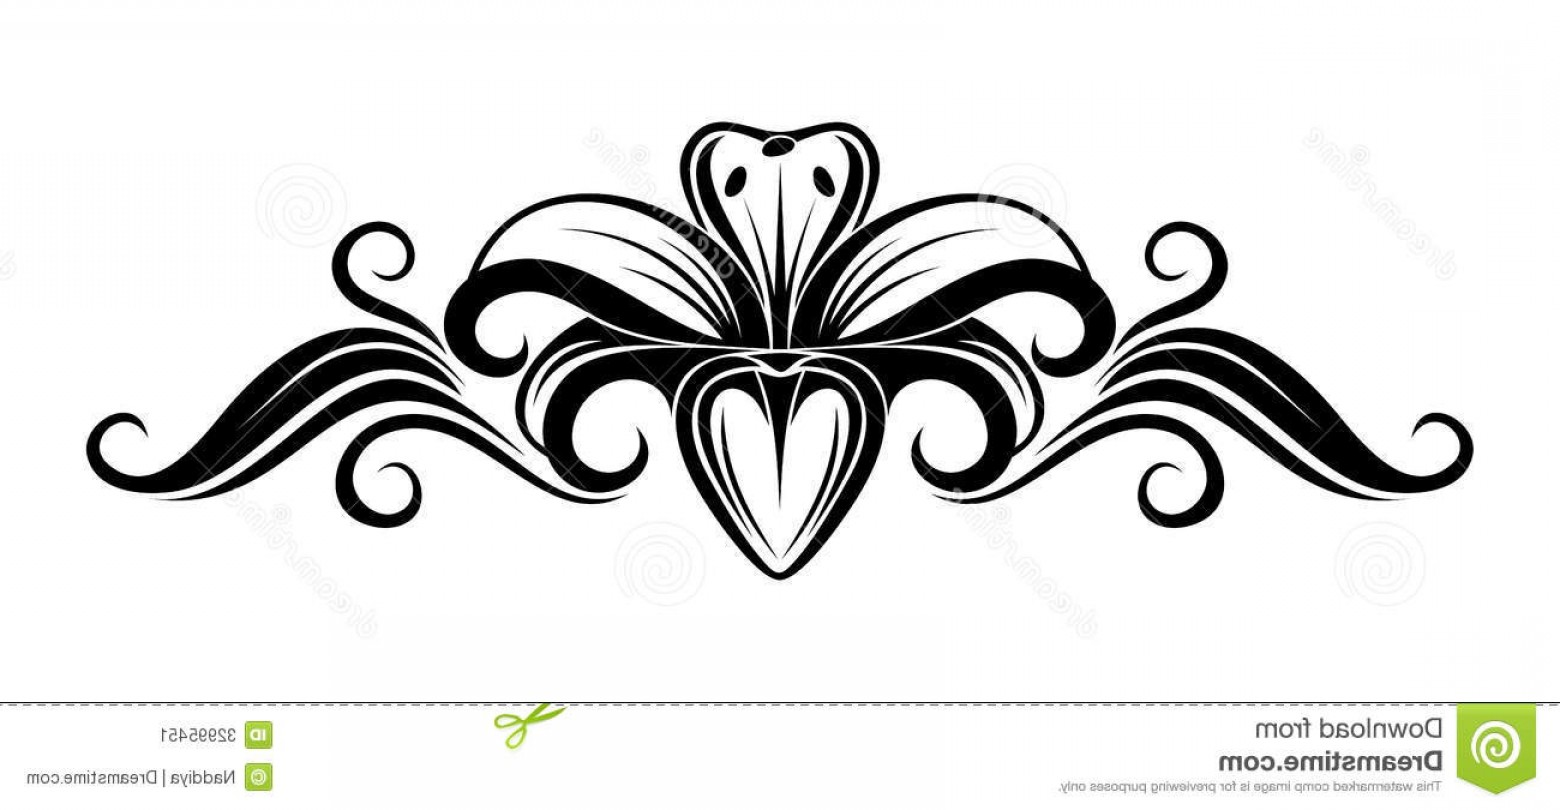 Lily stem flower black and white clipart vector free Lily Flower Clipart Black And White   SOIDERGI vector free